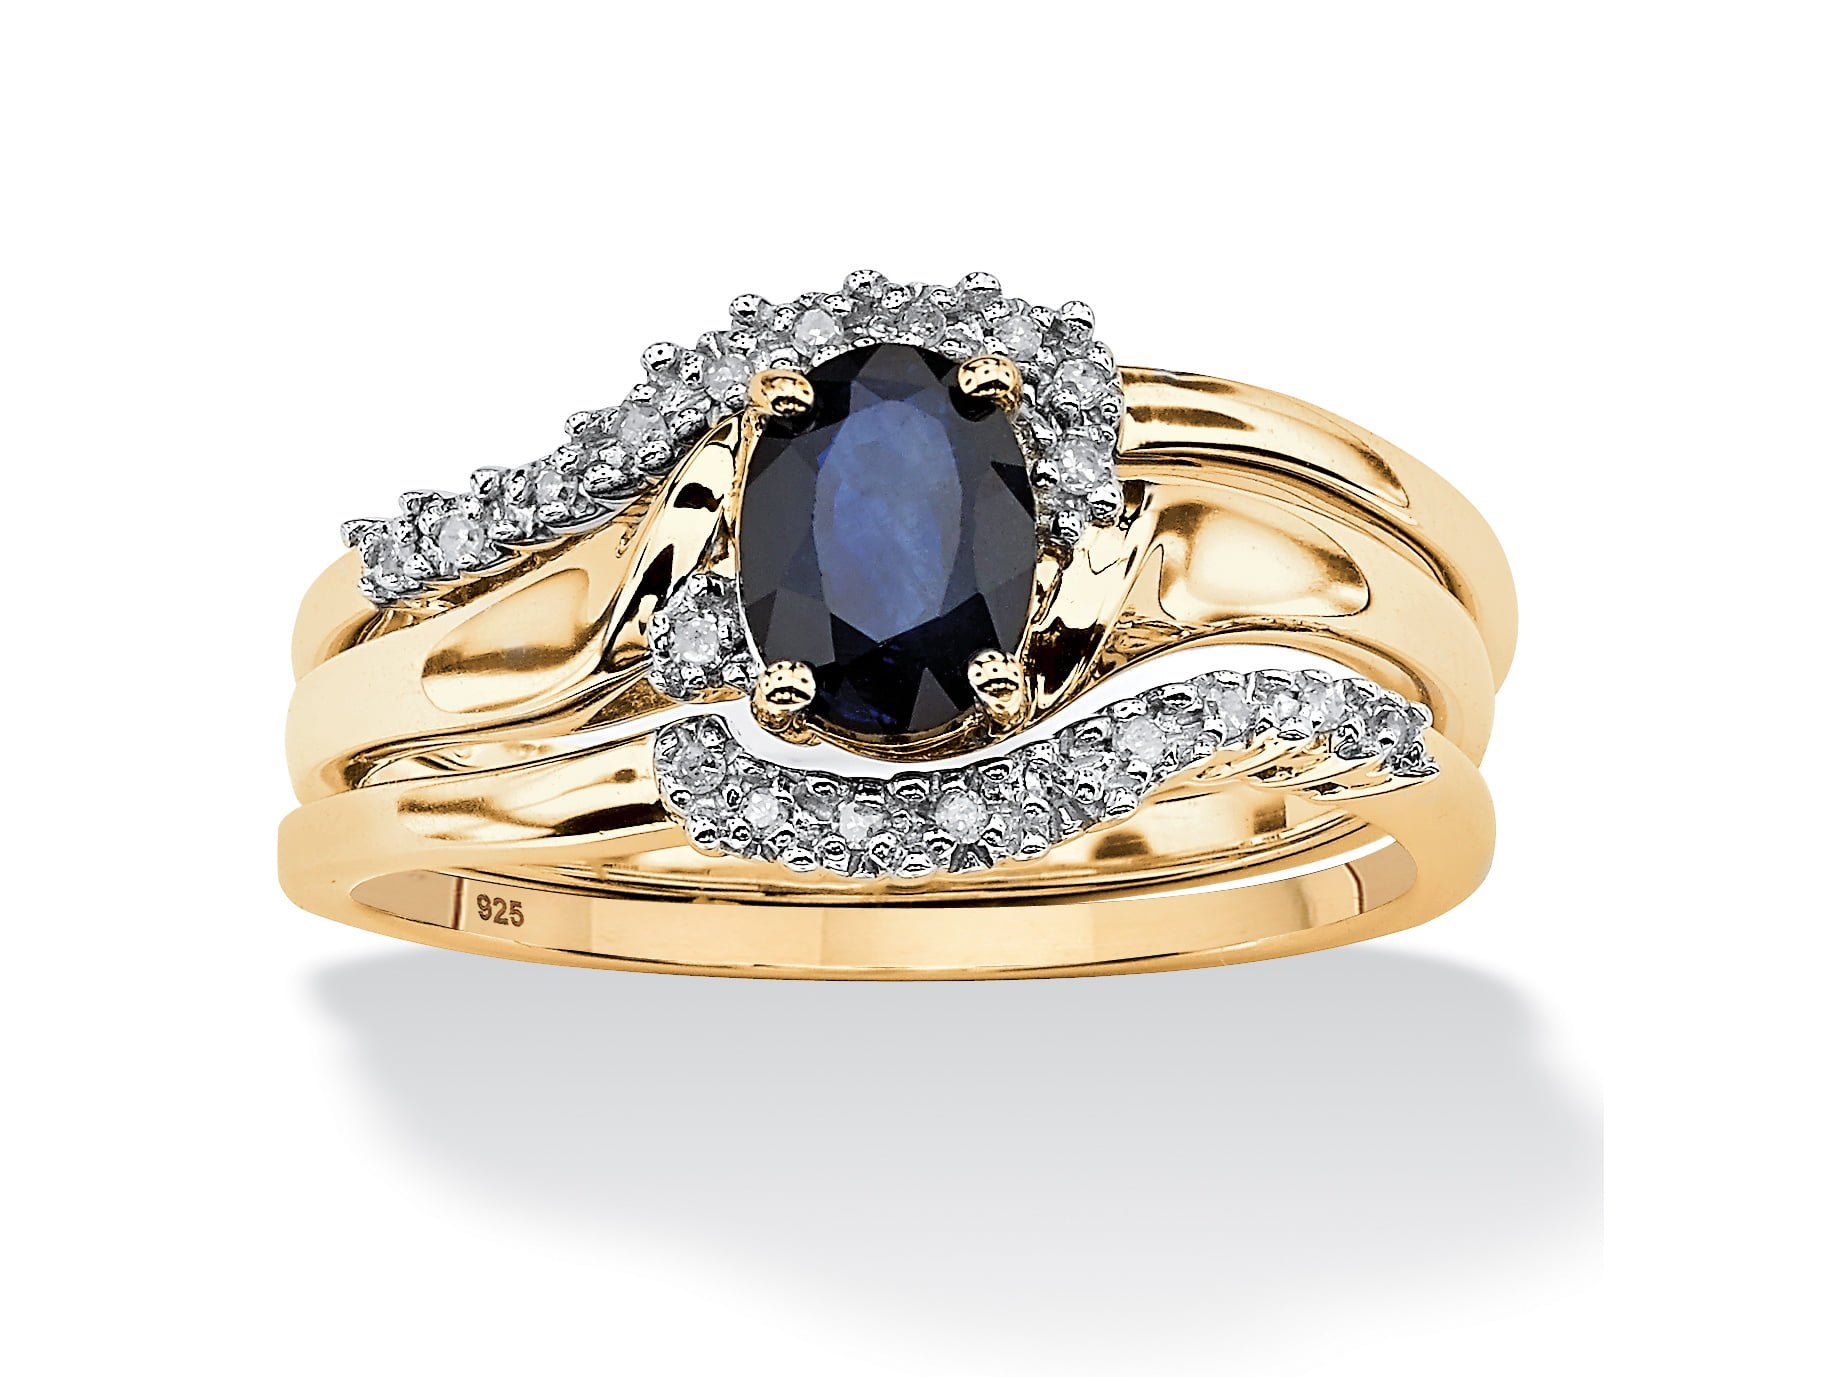 3 Piece Oval-Cut Midnight Sapphire Bridal Ring Set in 18k Gold over Sterling Silver by PalmBeach Jewelry